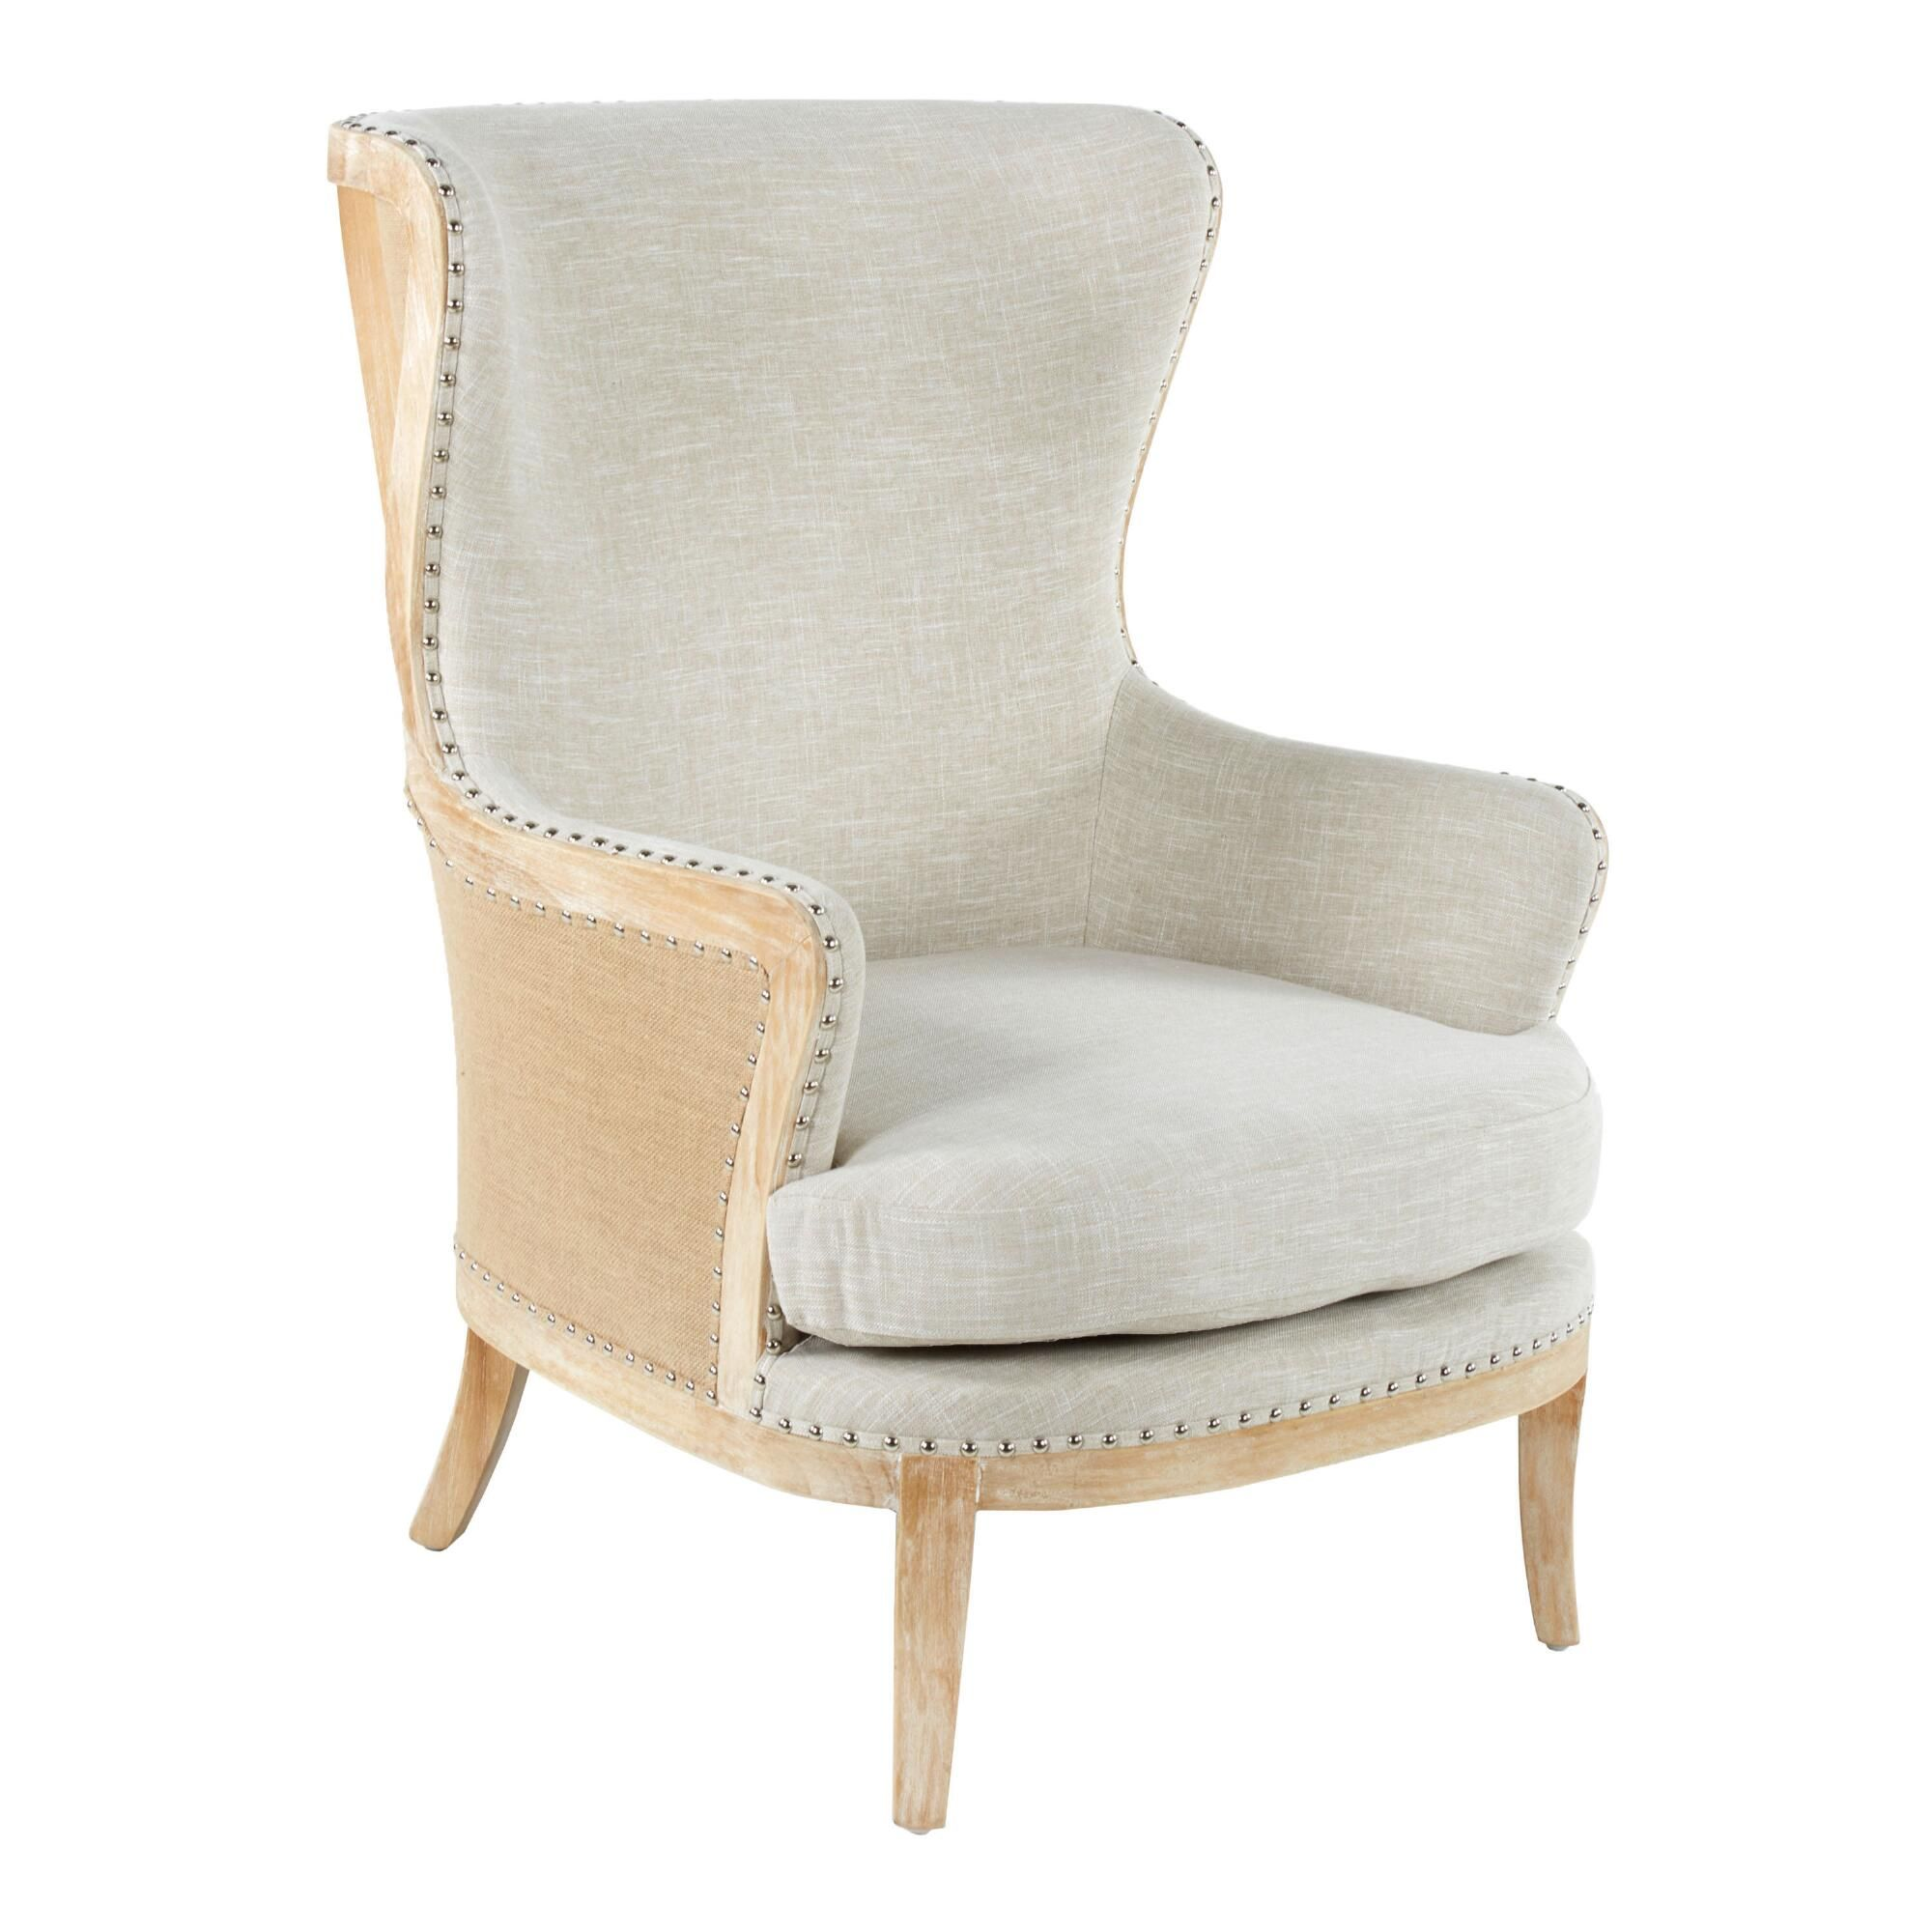 Beige Linen And Wood Sydney Upholstered Armchair Upholstered Arm